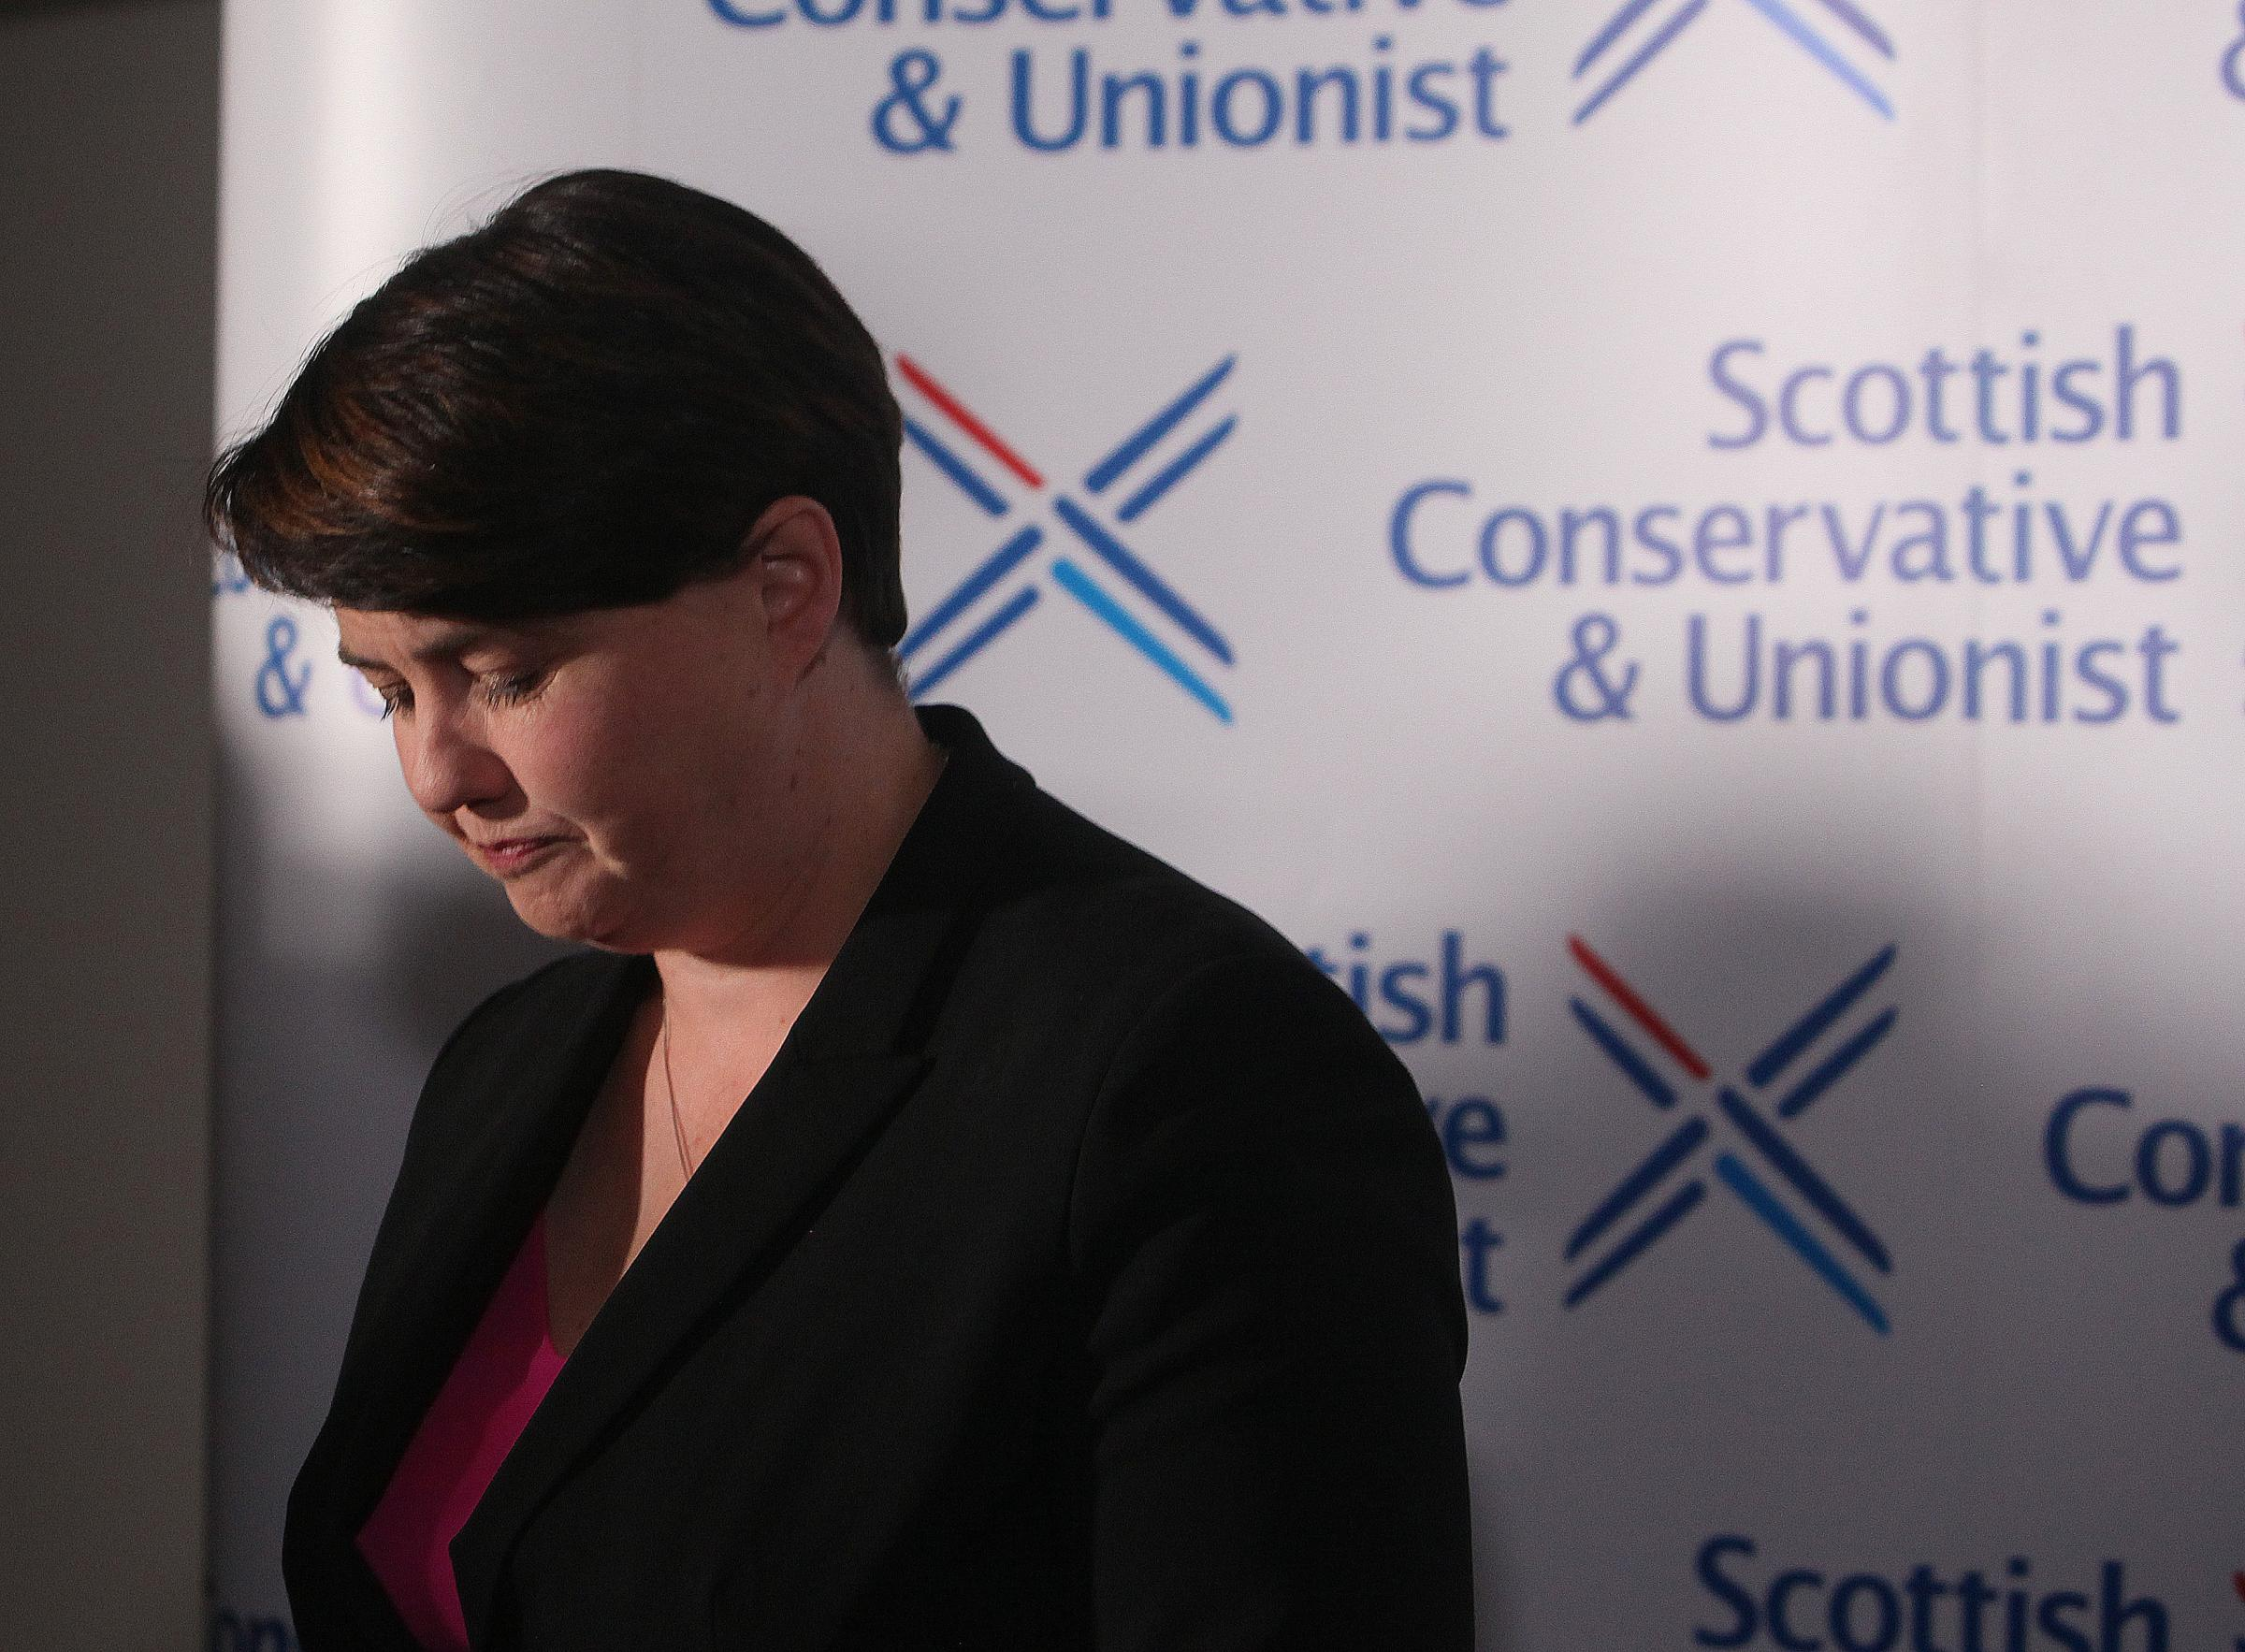 Ruth Davidson urged to quit after ITV appearance fee revealed